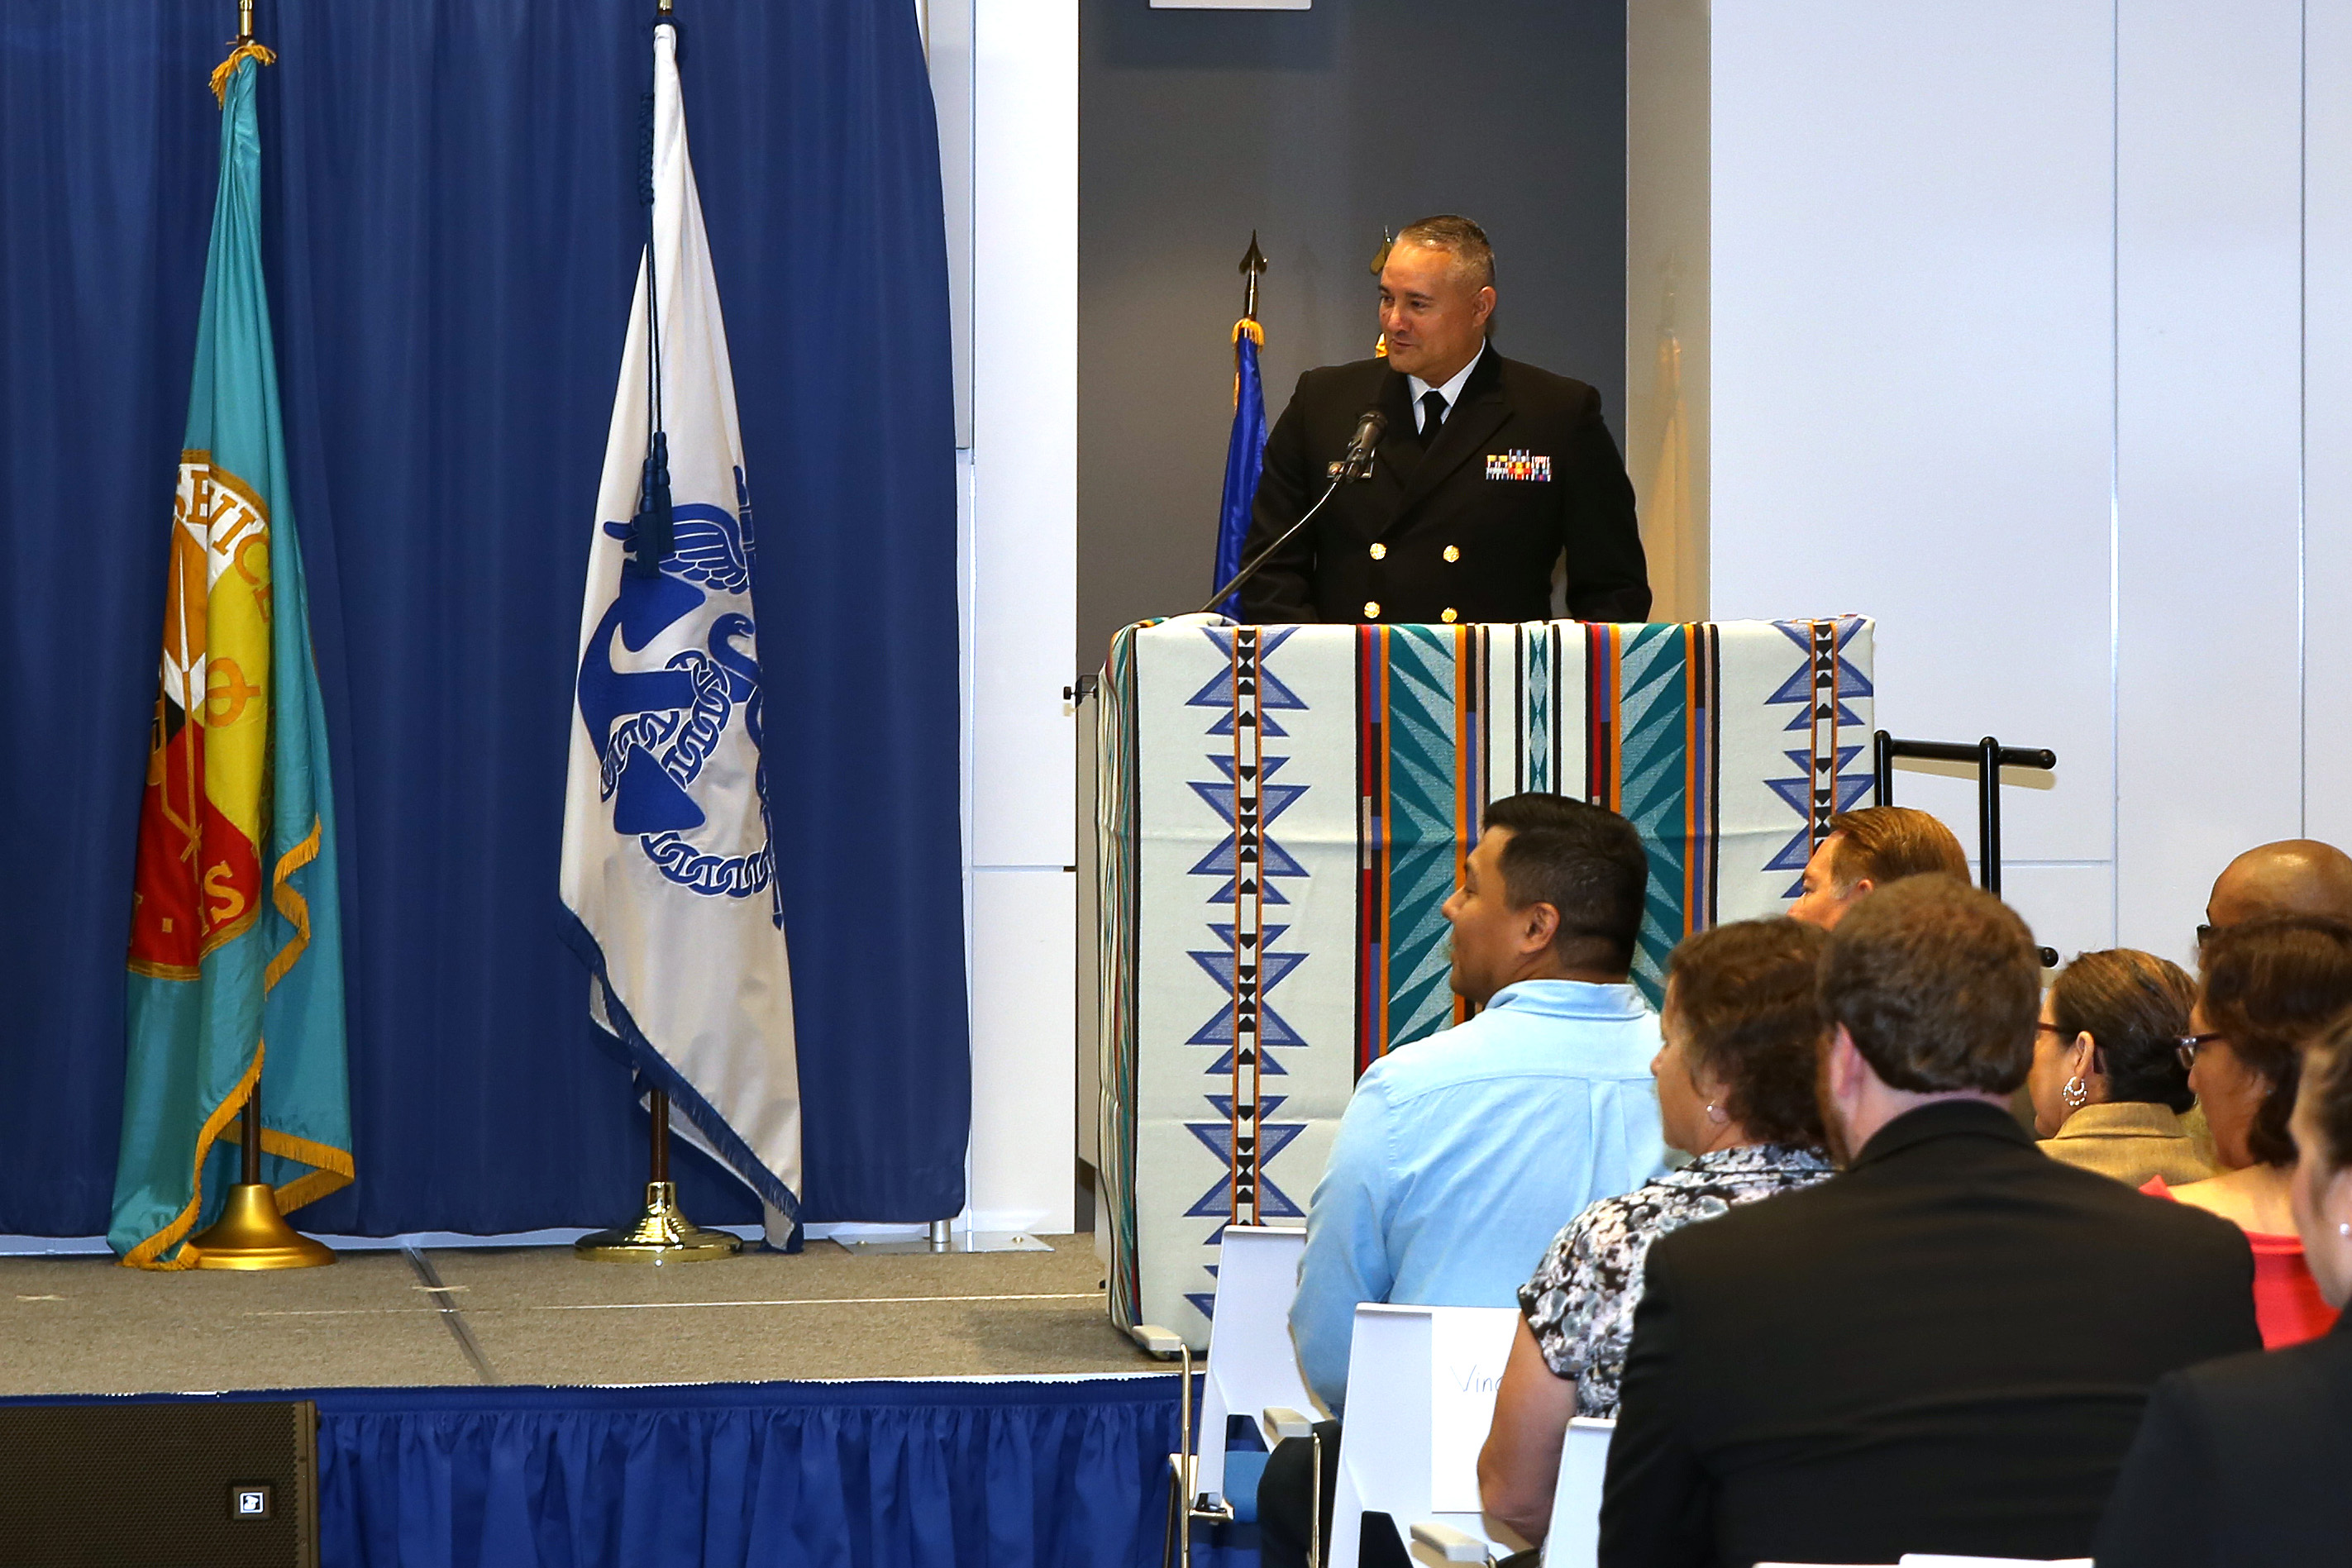 Opening Ceremony - Director's Opening Remarks - RADM Michael Weahkee (HQ)